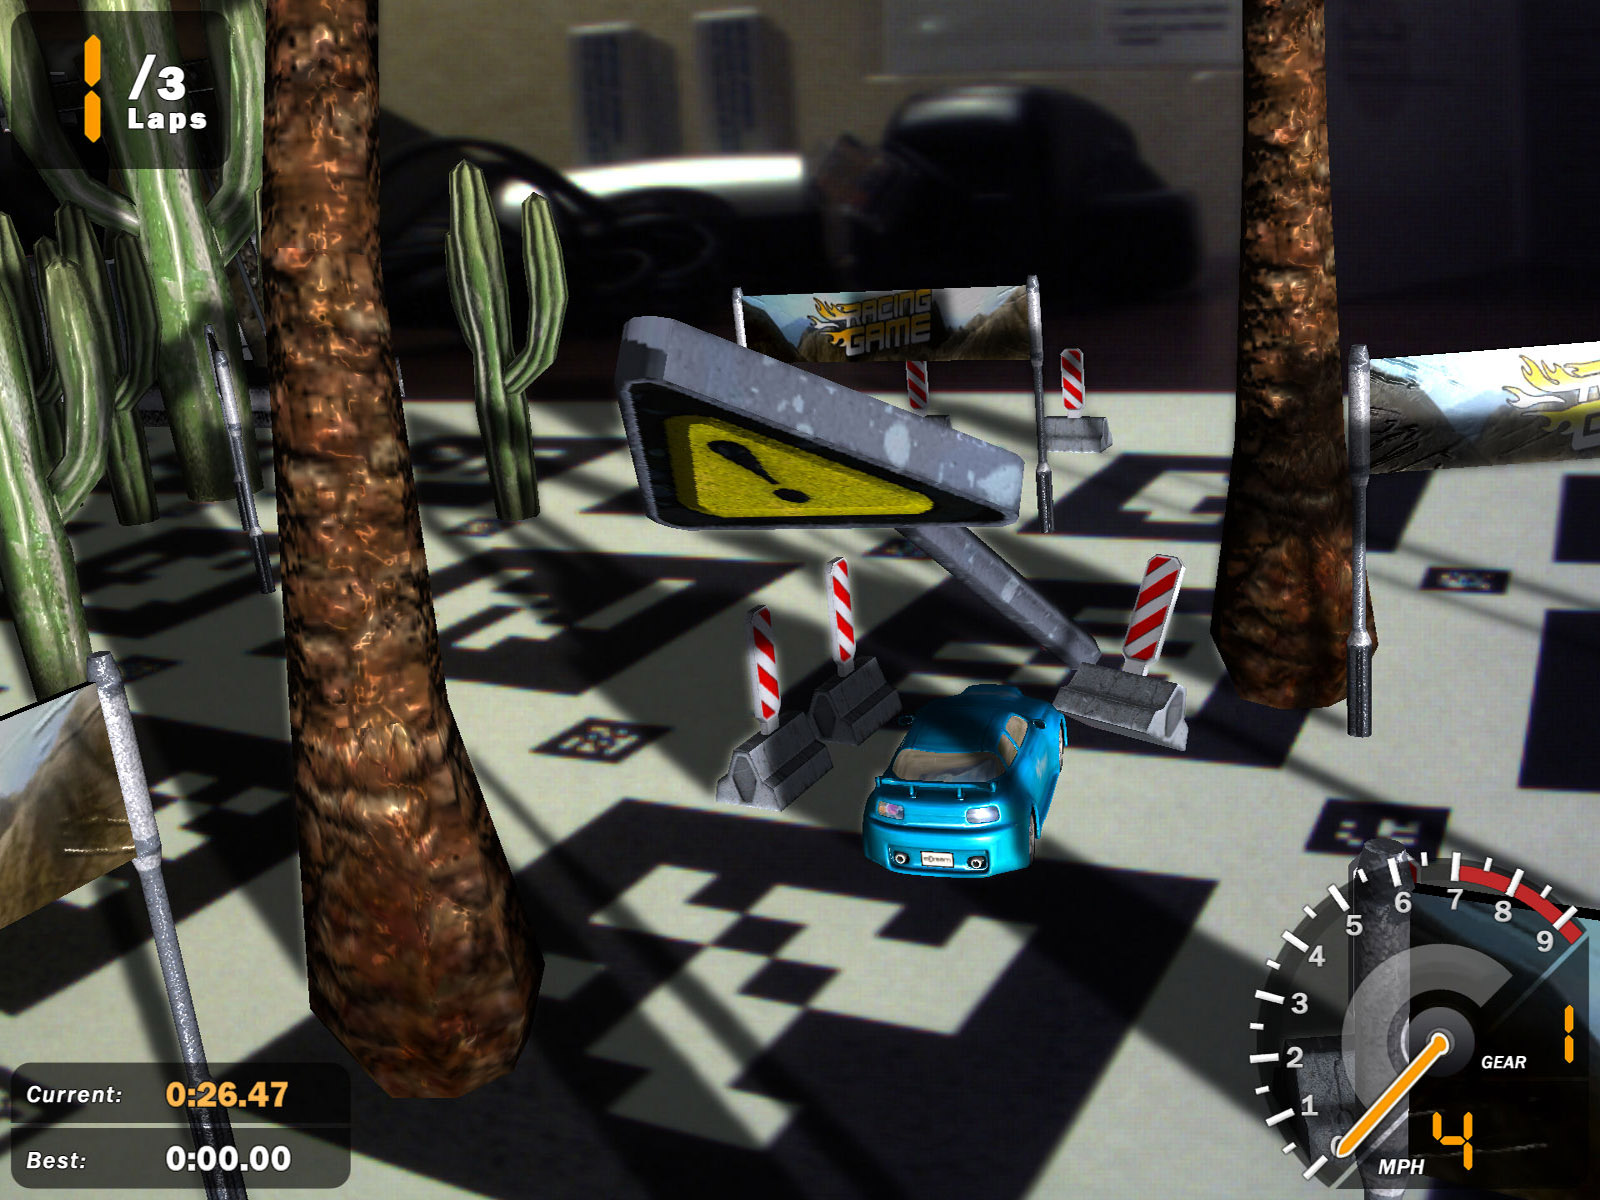 XNA AR Racing Game screenshot showing car knocking over traffic sign